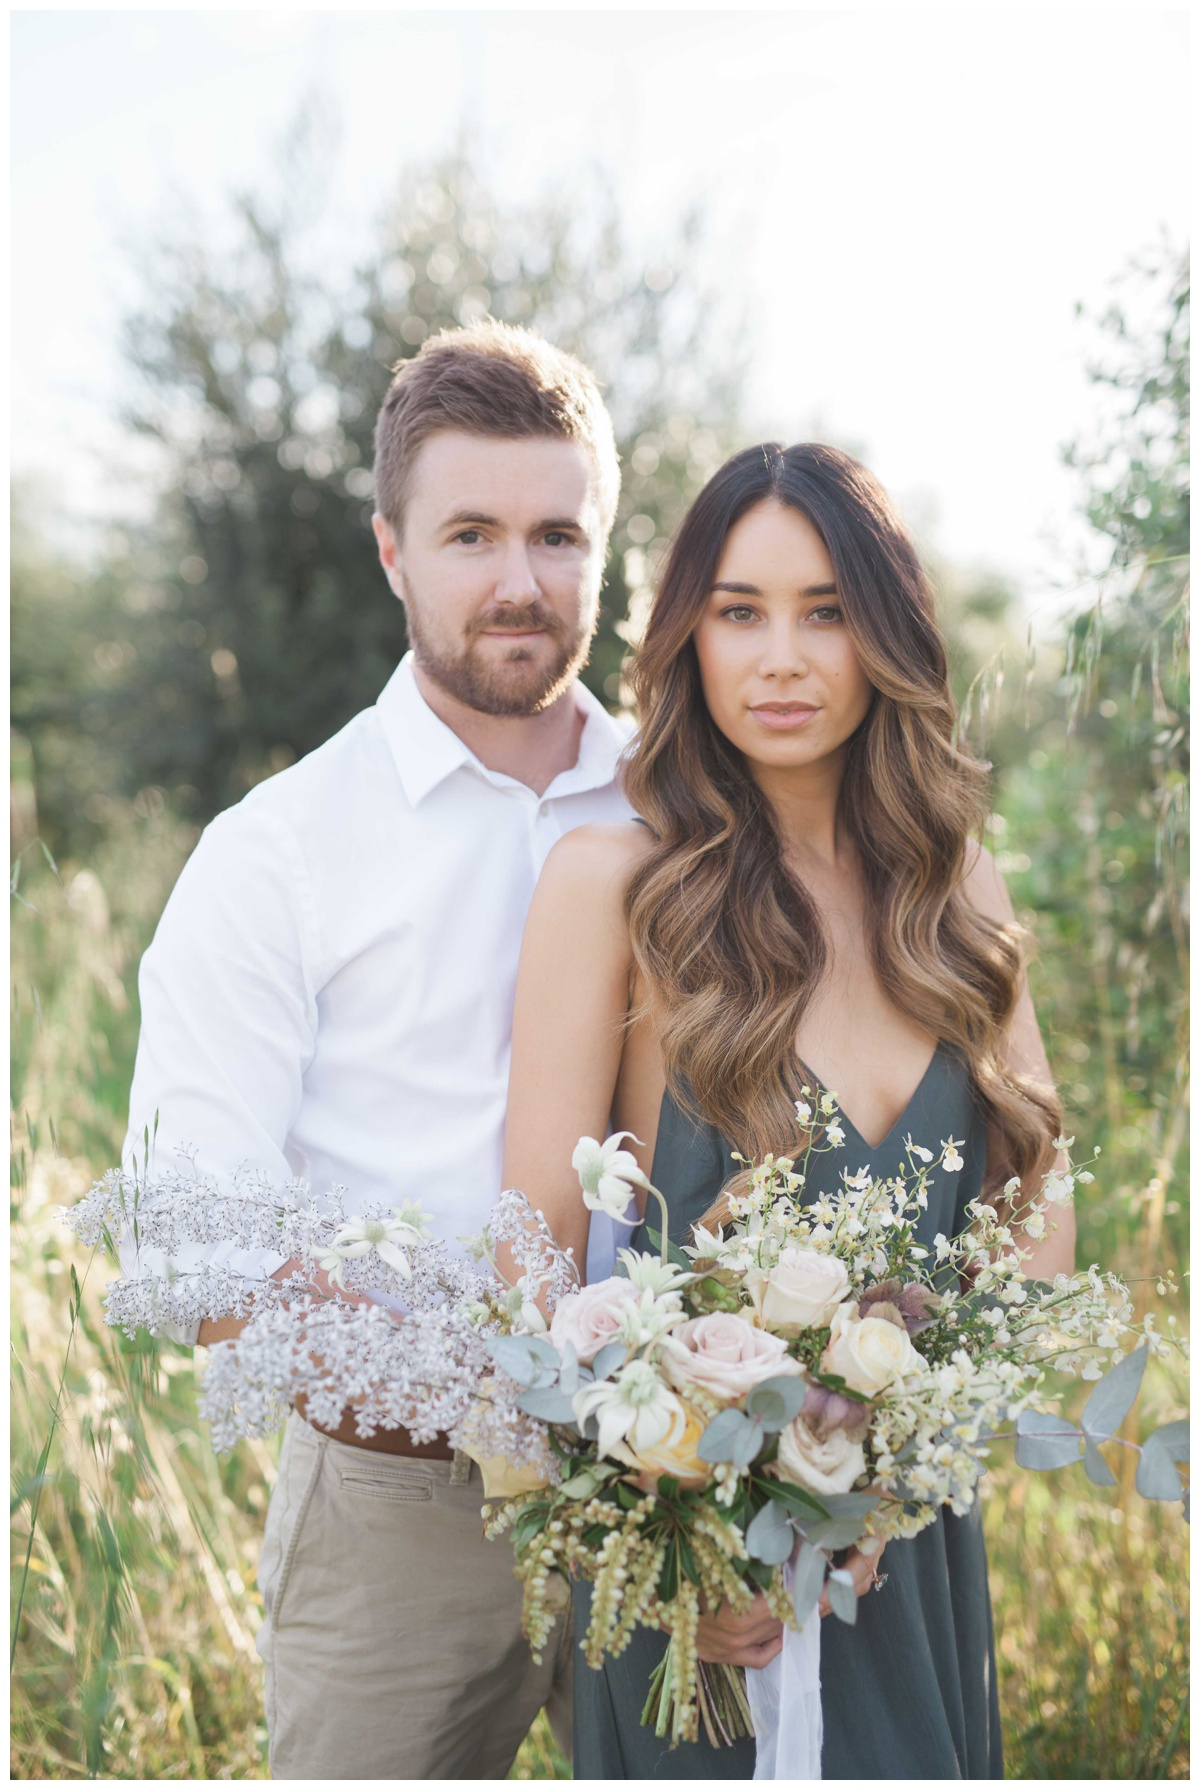 CA Floral Couture & Chrystal Hair - Tessa Kit Photography - Perth Wedding & Engagement Photographer - October 01, 2017 - IMG_7766.jpg